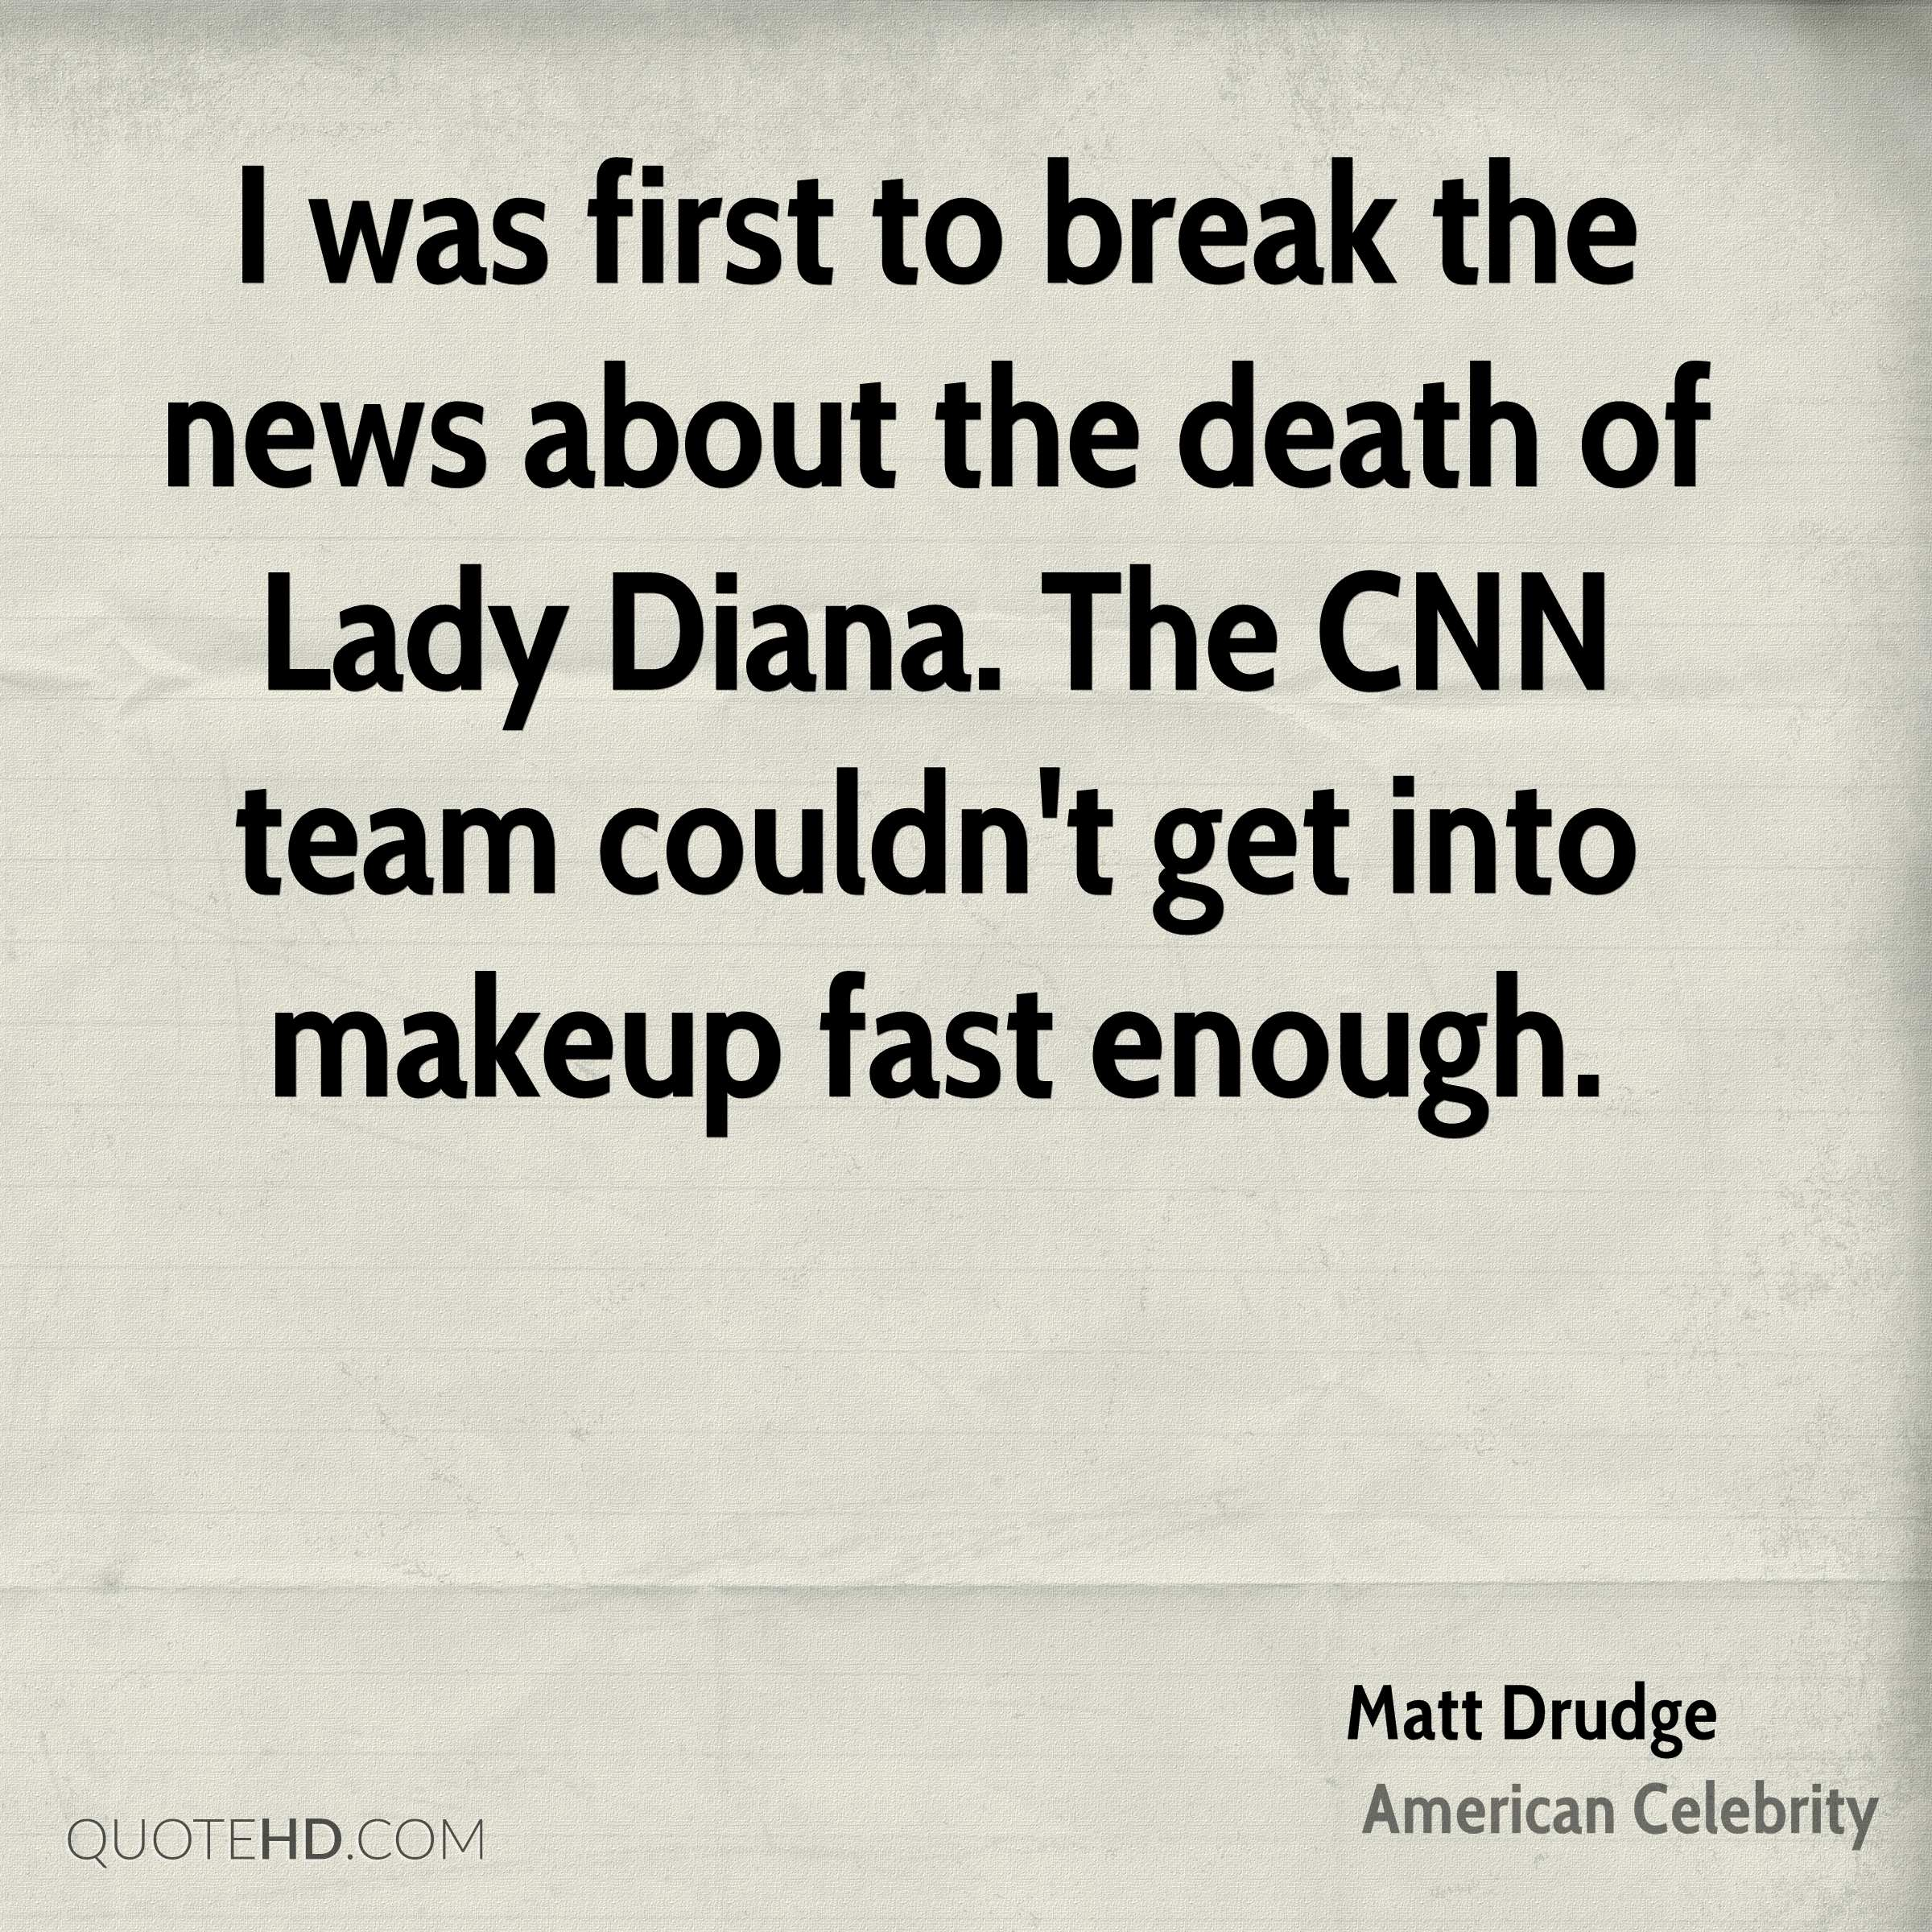 I was first to break the news about the death of Lady Diana. The CNN team couldn't get into makeup fast enough.